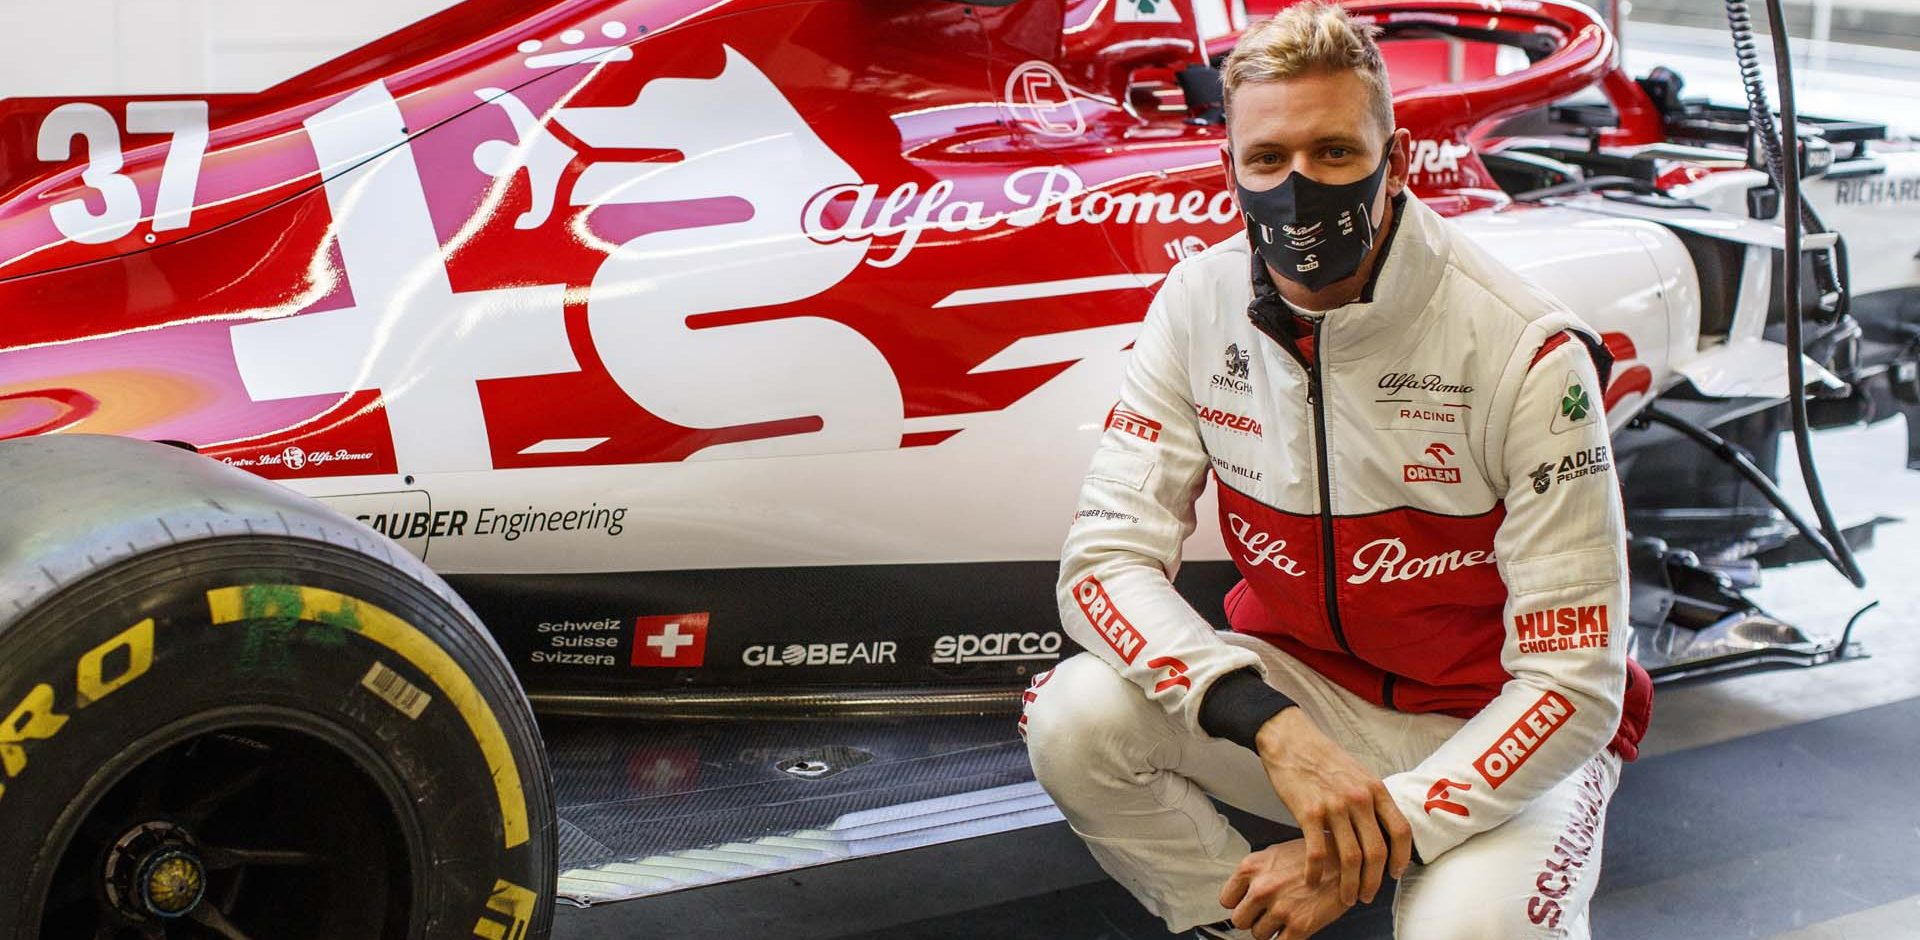 SCHUMACHER Mick (ger), Alfa Romeo Racing ORLEN C39, portrait during the Formula 1 Aramco Grosser Preis Der Eifel 2020, Eifel Grand Prix, from October 9 to 11, 2020 on the Nürburgring, in Nürburg, Germany - Photo Xavi Bonilla / DPPI